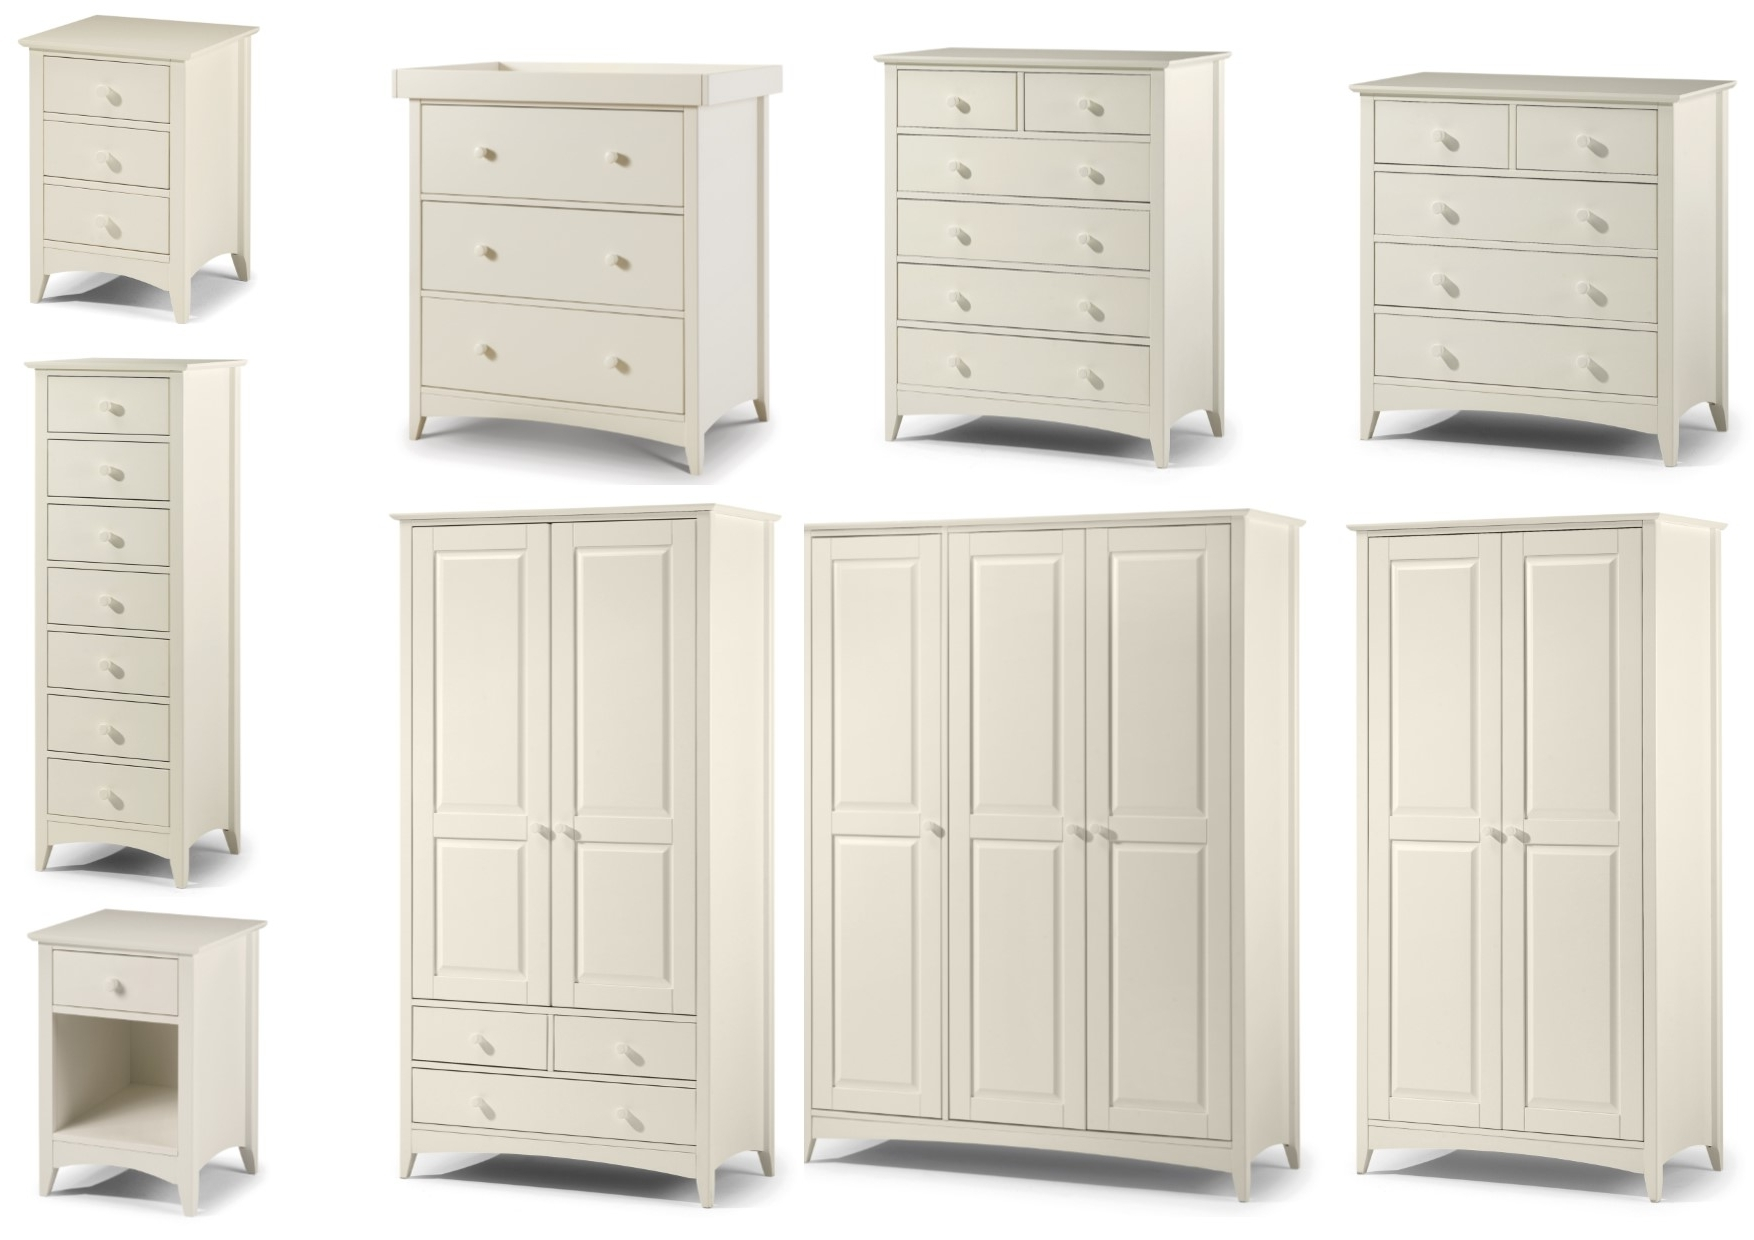 Julian Bowen Cameo Stone White Bedroom Range – Bedside Drawers In Well Known Julian Bowen Wardrobes (Gallery 9 of 15)